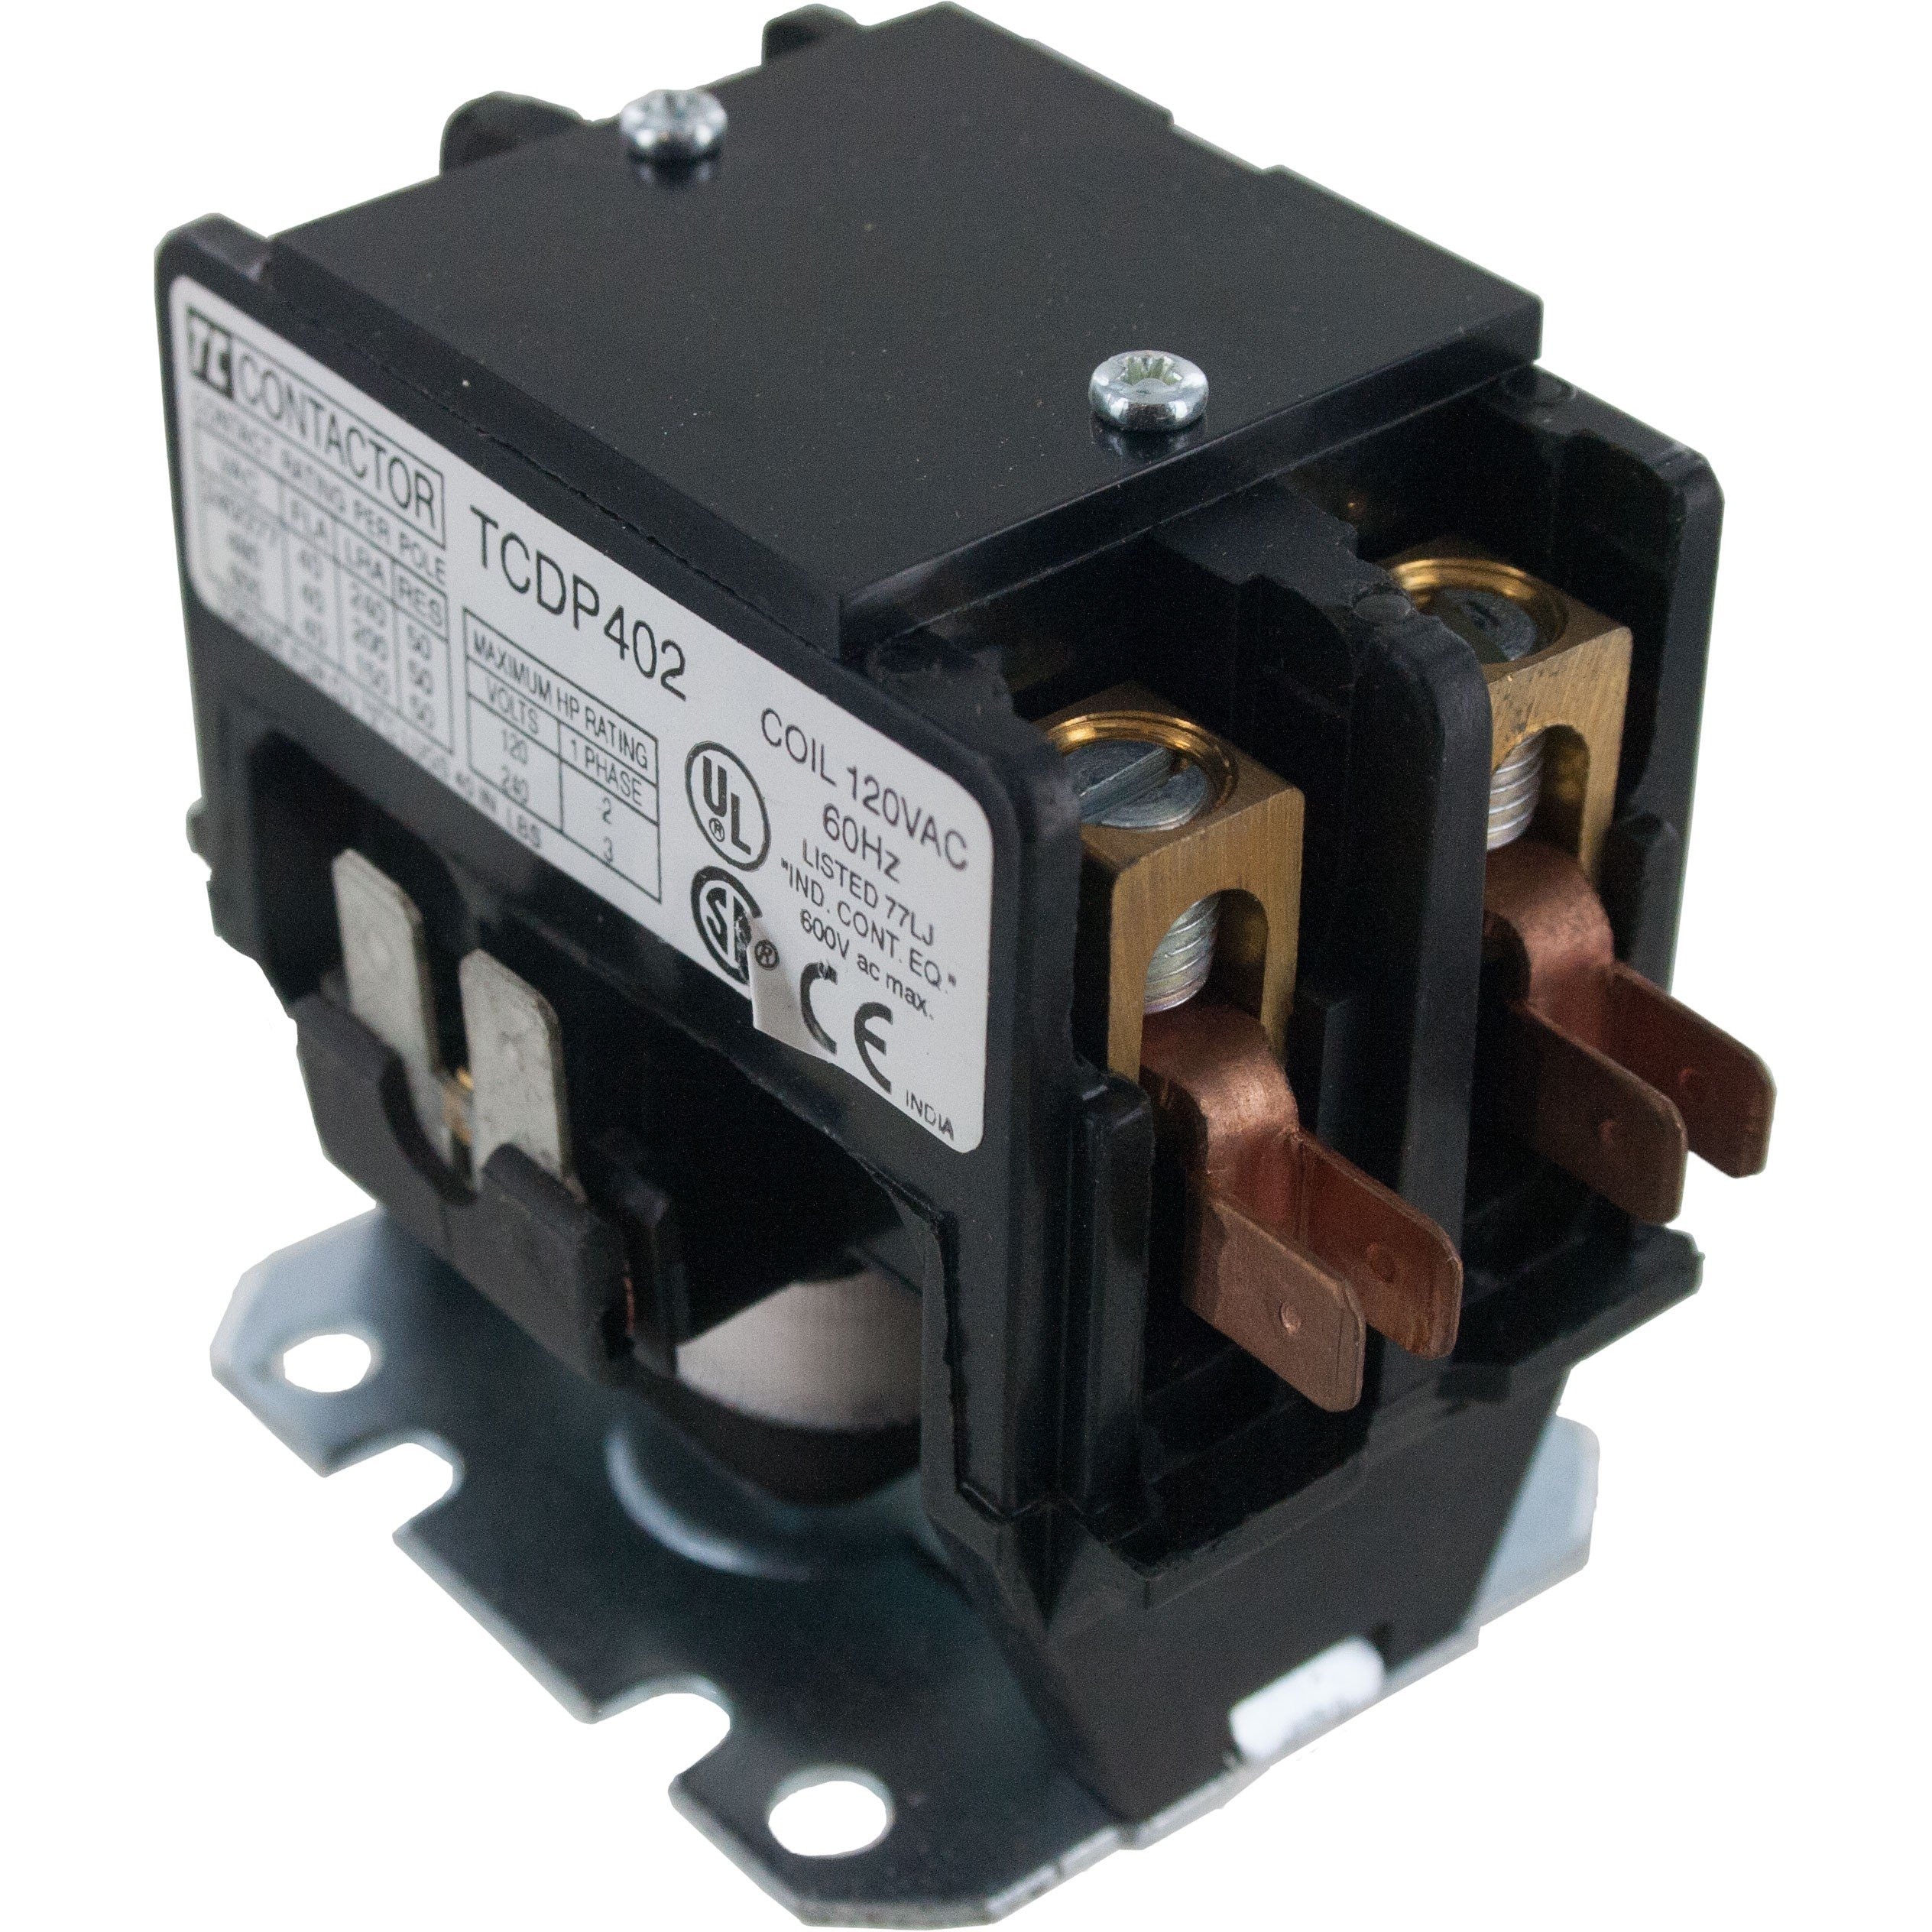 2 Pole Contactor 40 Amp 240VAC Coil